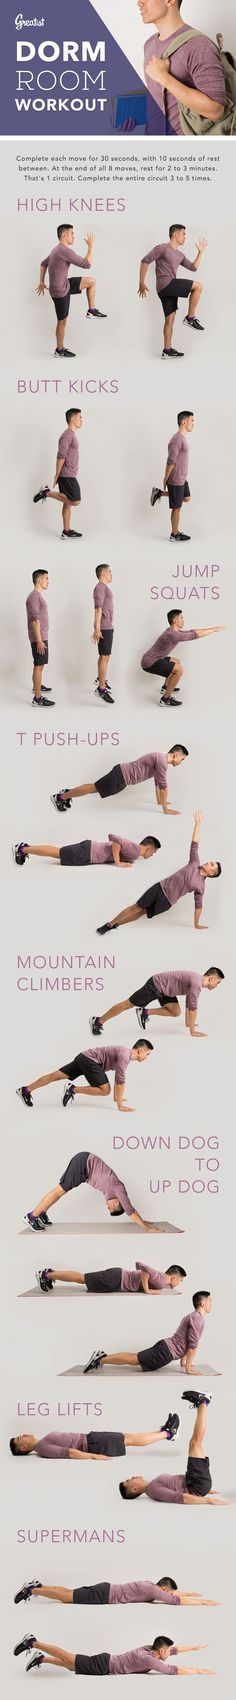 8 Bodyweight Exercis